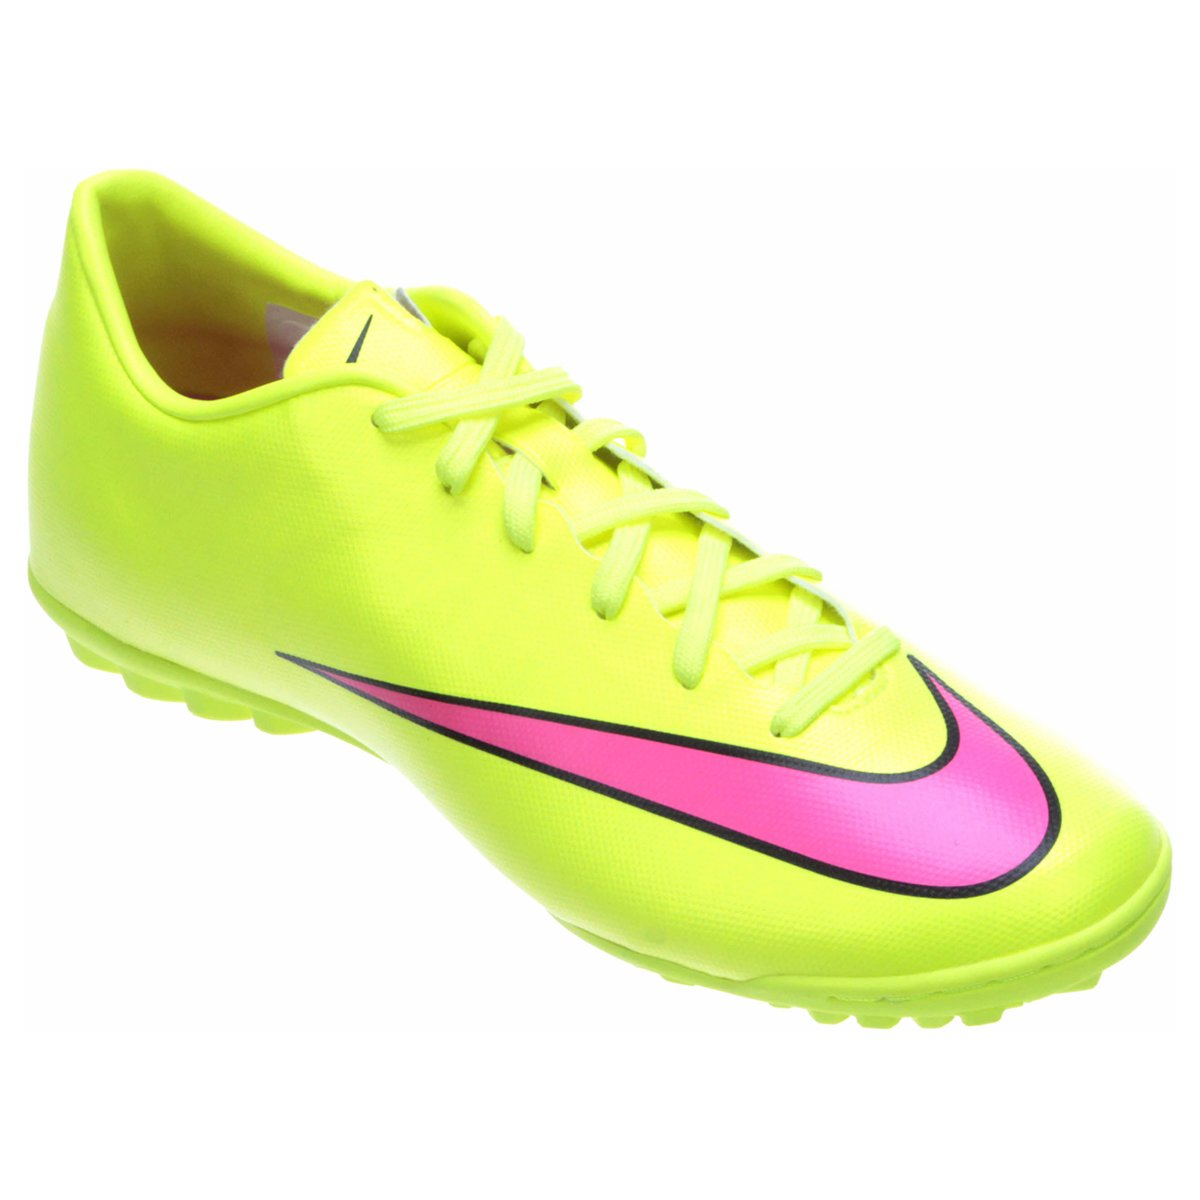 official photos d47a4 18734 Chuteira Society Nike Mercurial Victory 5 TF | Loja do Inter